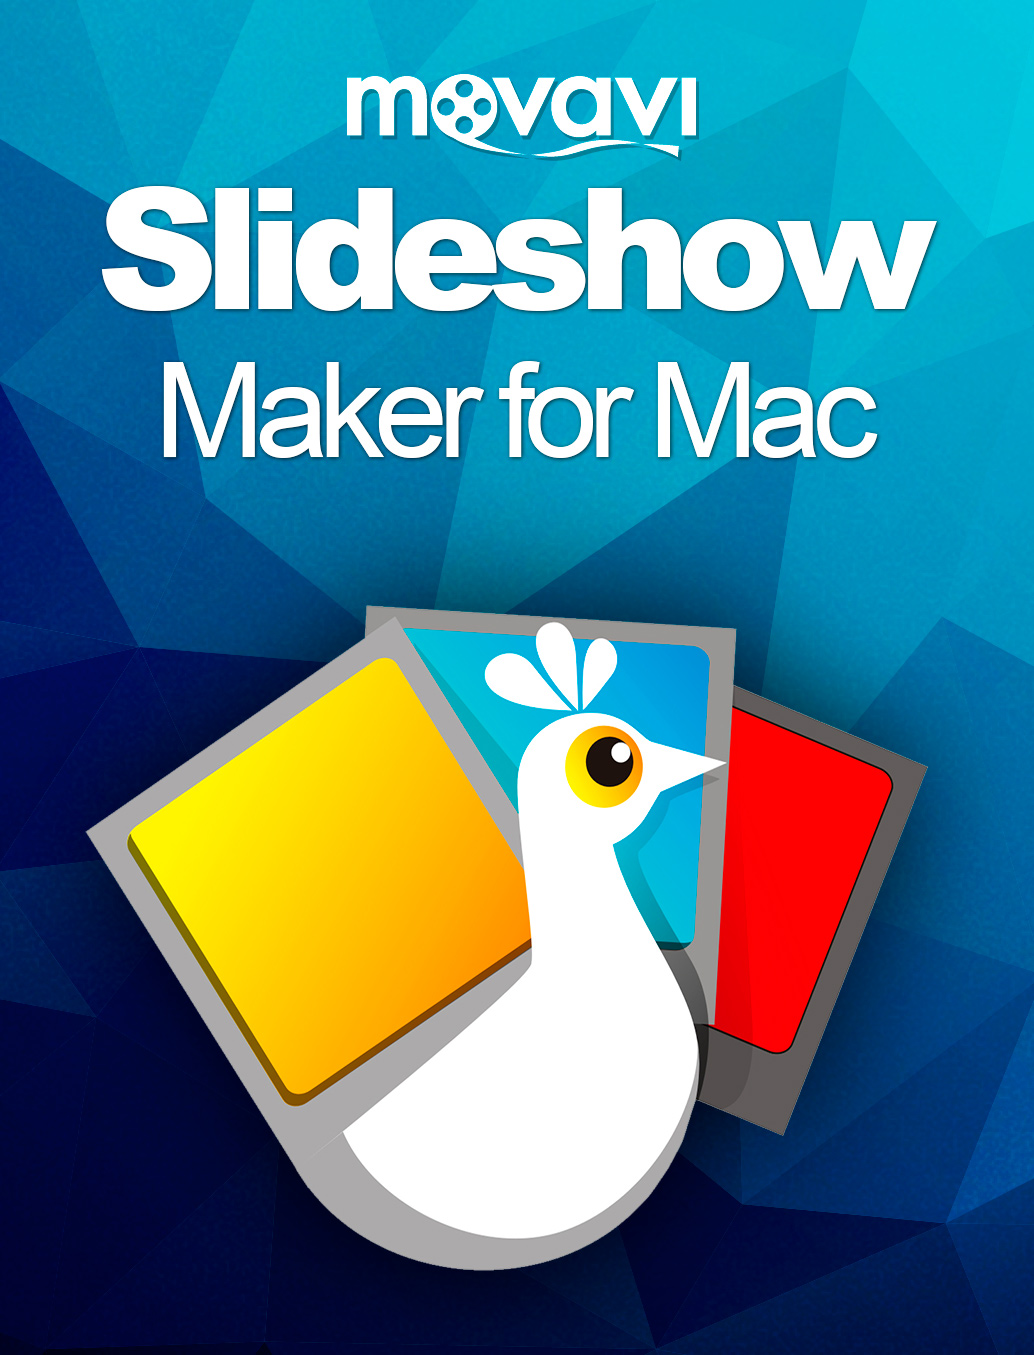 Movavi Slideshow Maker for Mac Business Edition [Download] by Movavi